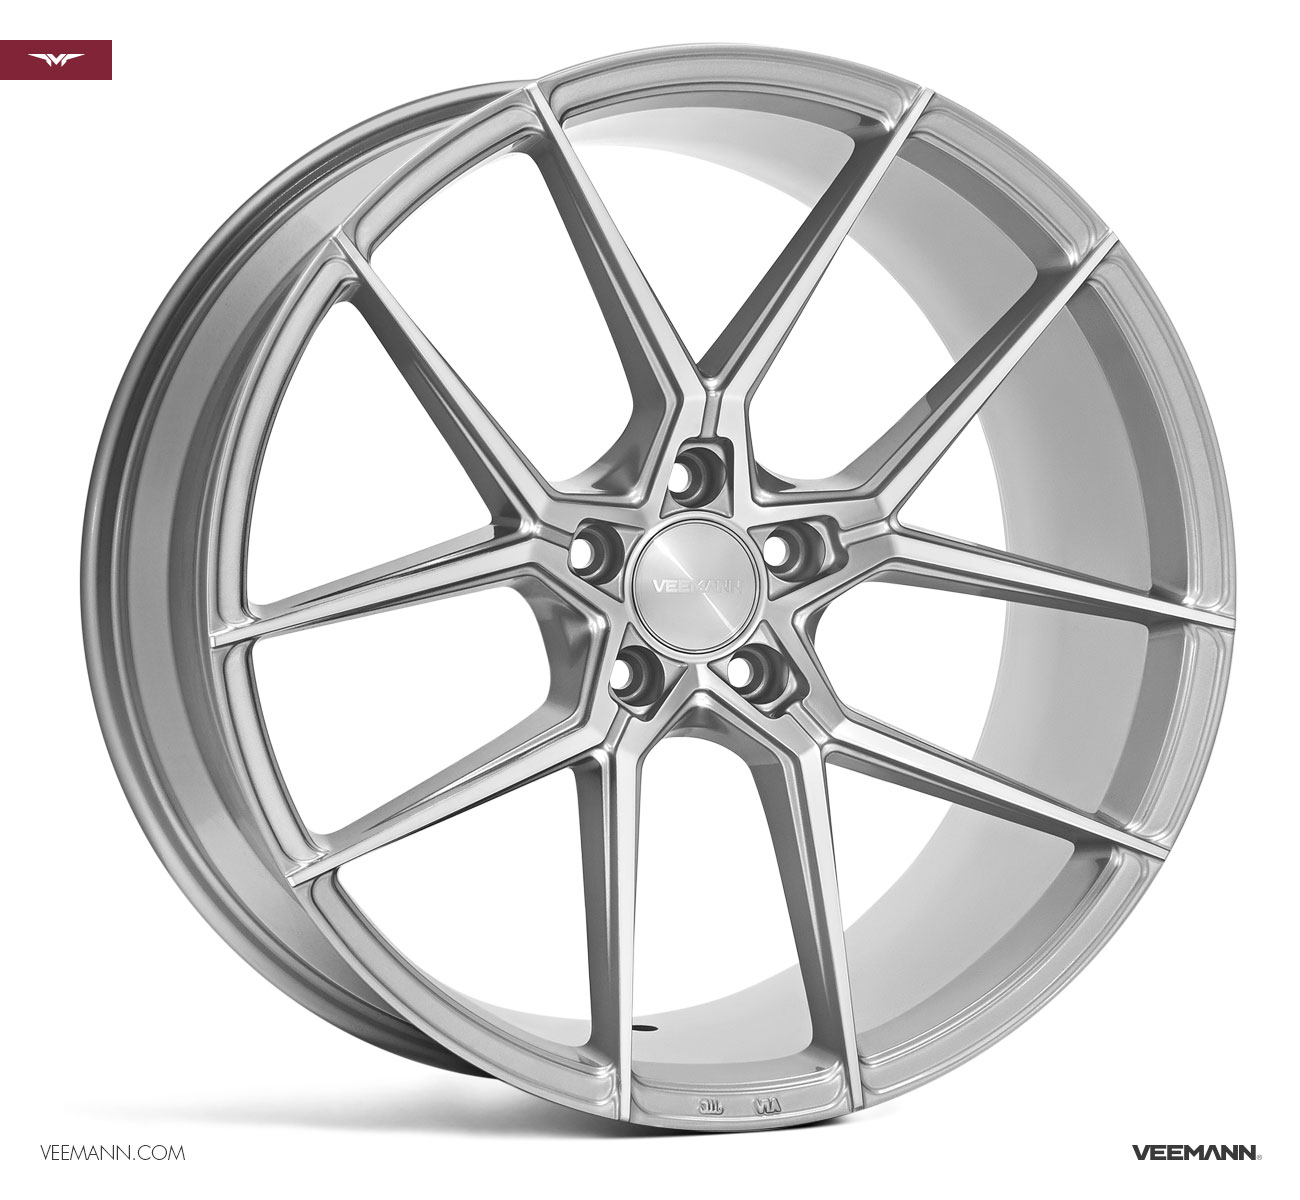 "NEW 19"" VEEMANN V-FS39 ALLOY WHEELS IN SILVER POL WITH WIDER 9.5"" REAR"